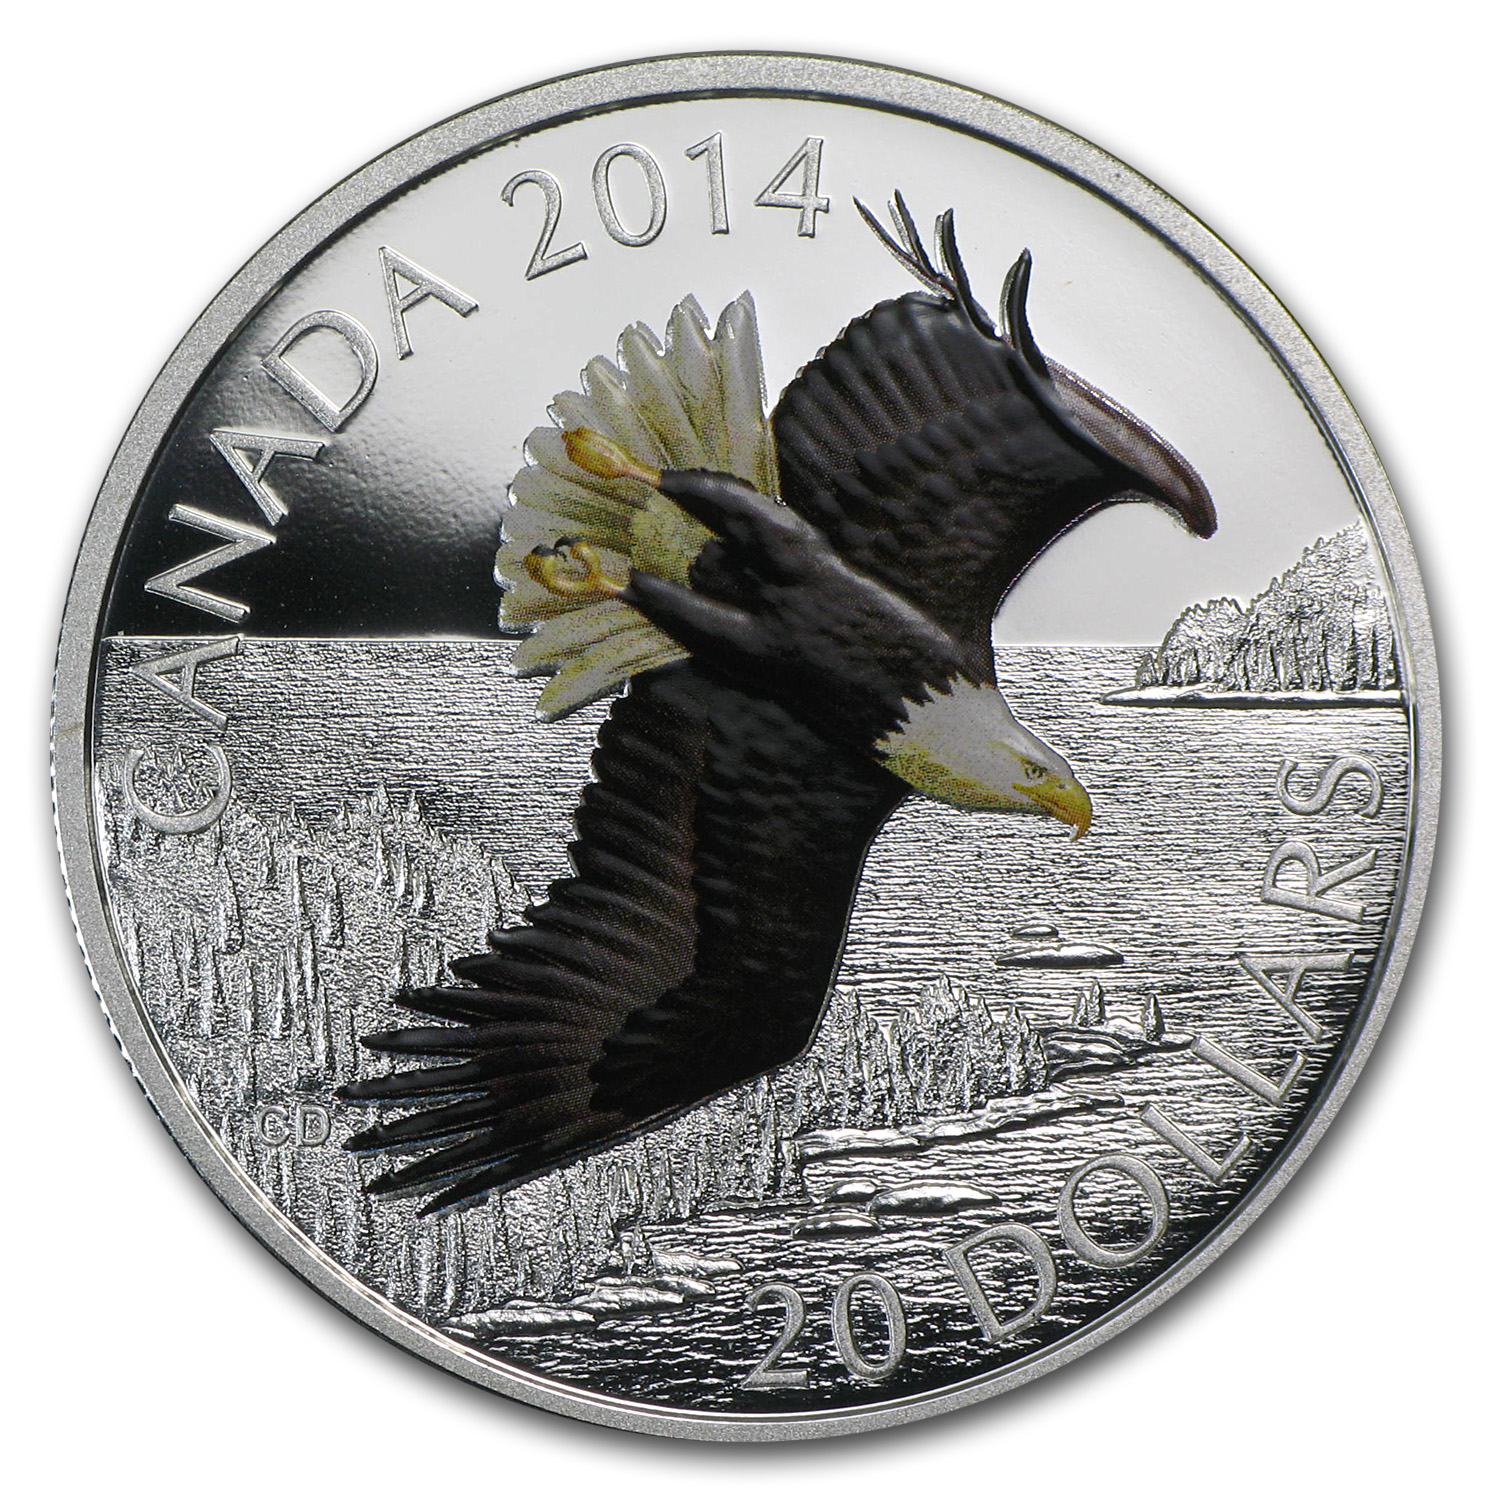 2014 1 oz Silver Canadian $20 Coin - Soaring Bald Eagle